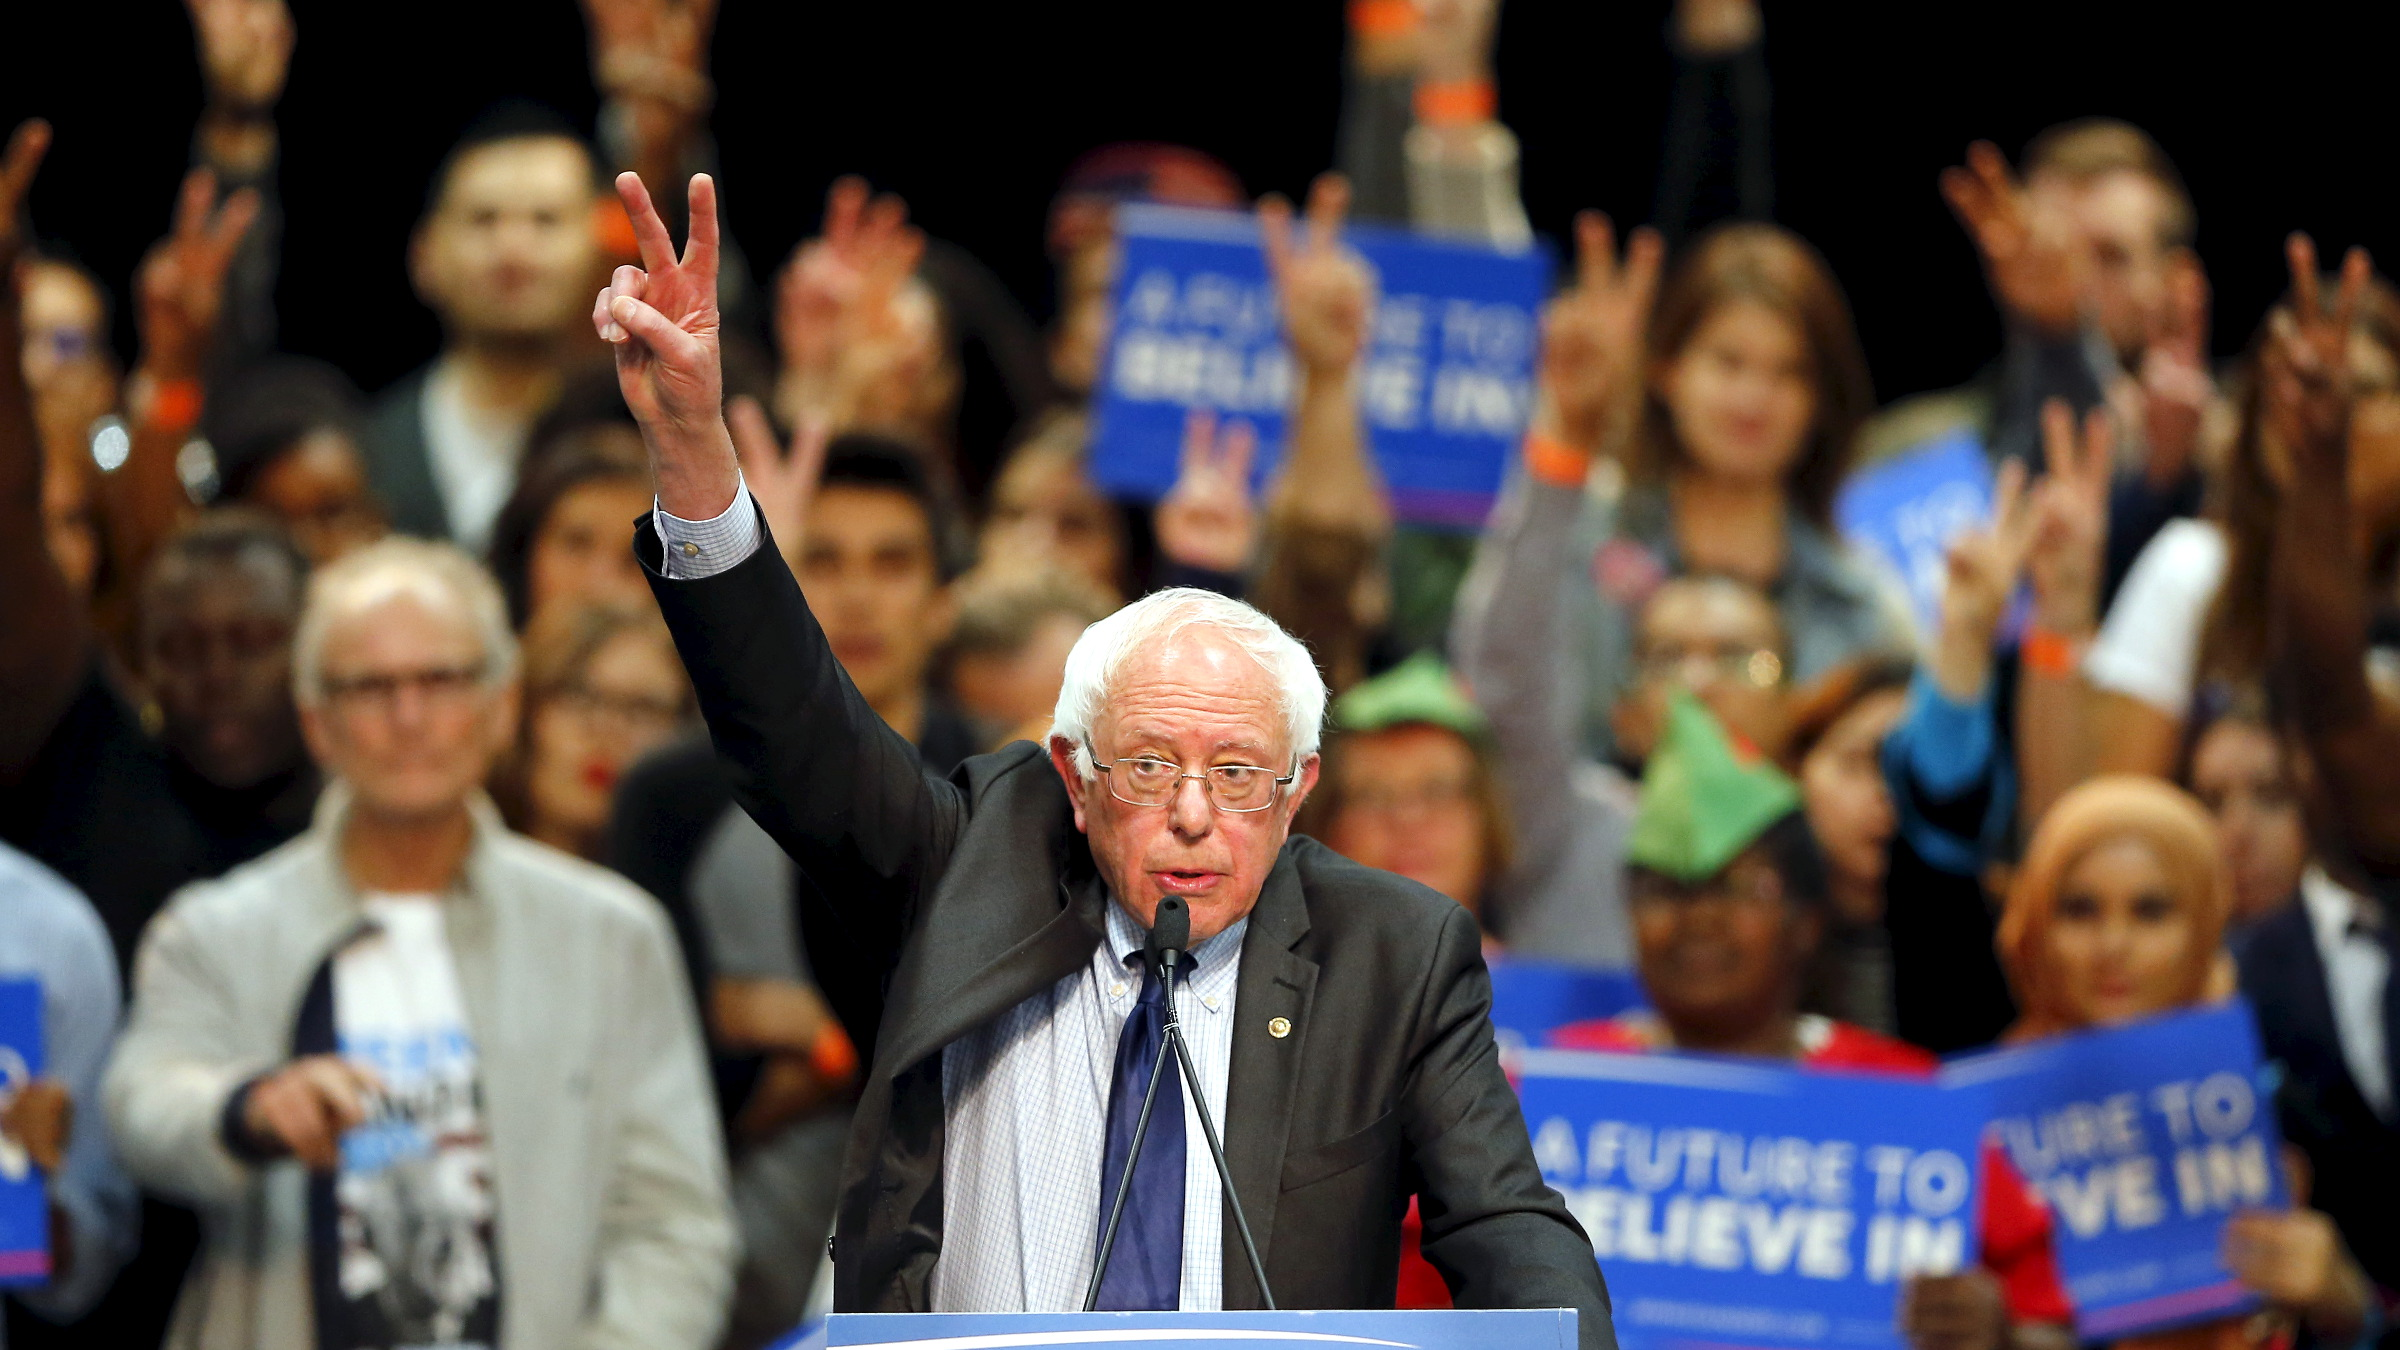 Democratic U.S. presidential candidate Bernie Sanders gestures as he speaks about the terror attack in Brussels during a campaign rally in San Diego, California March 22, 2016.